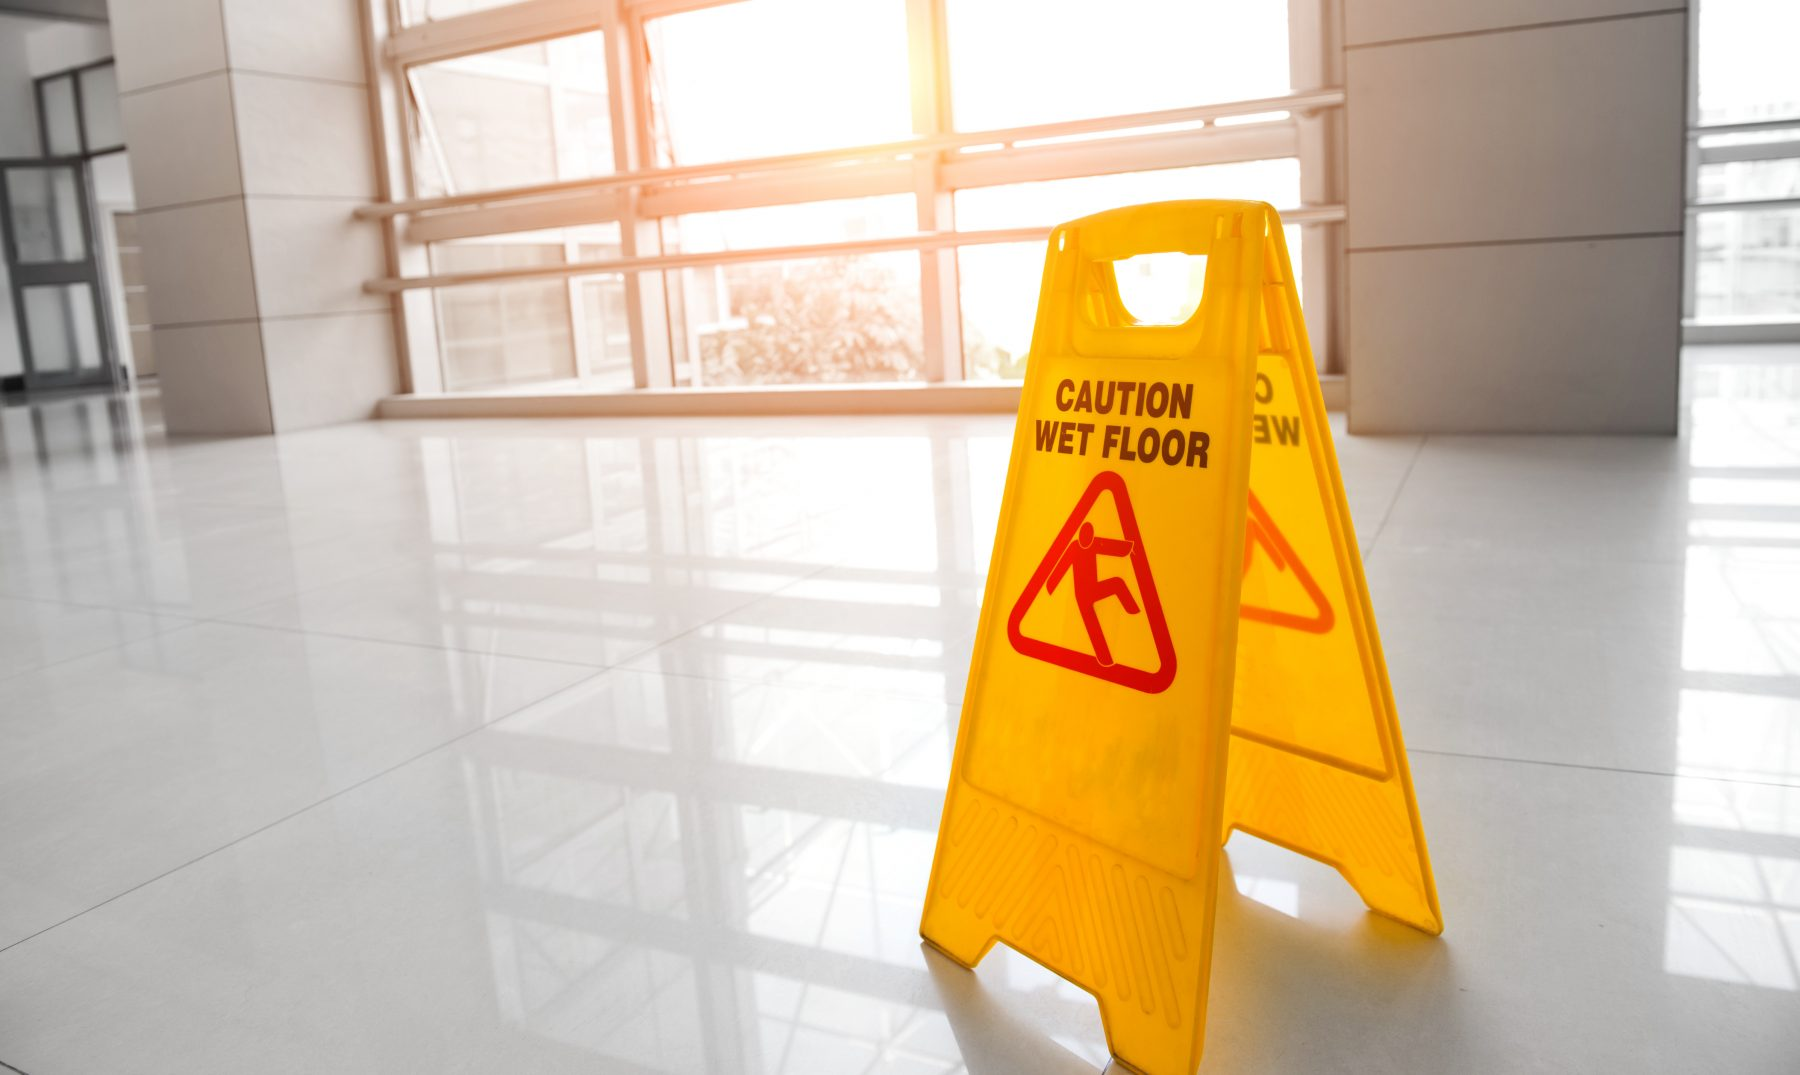 How to Prevent Slips and Falls in the Workplace